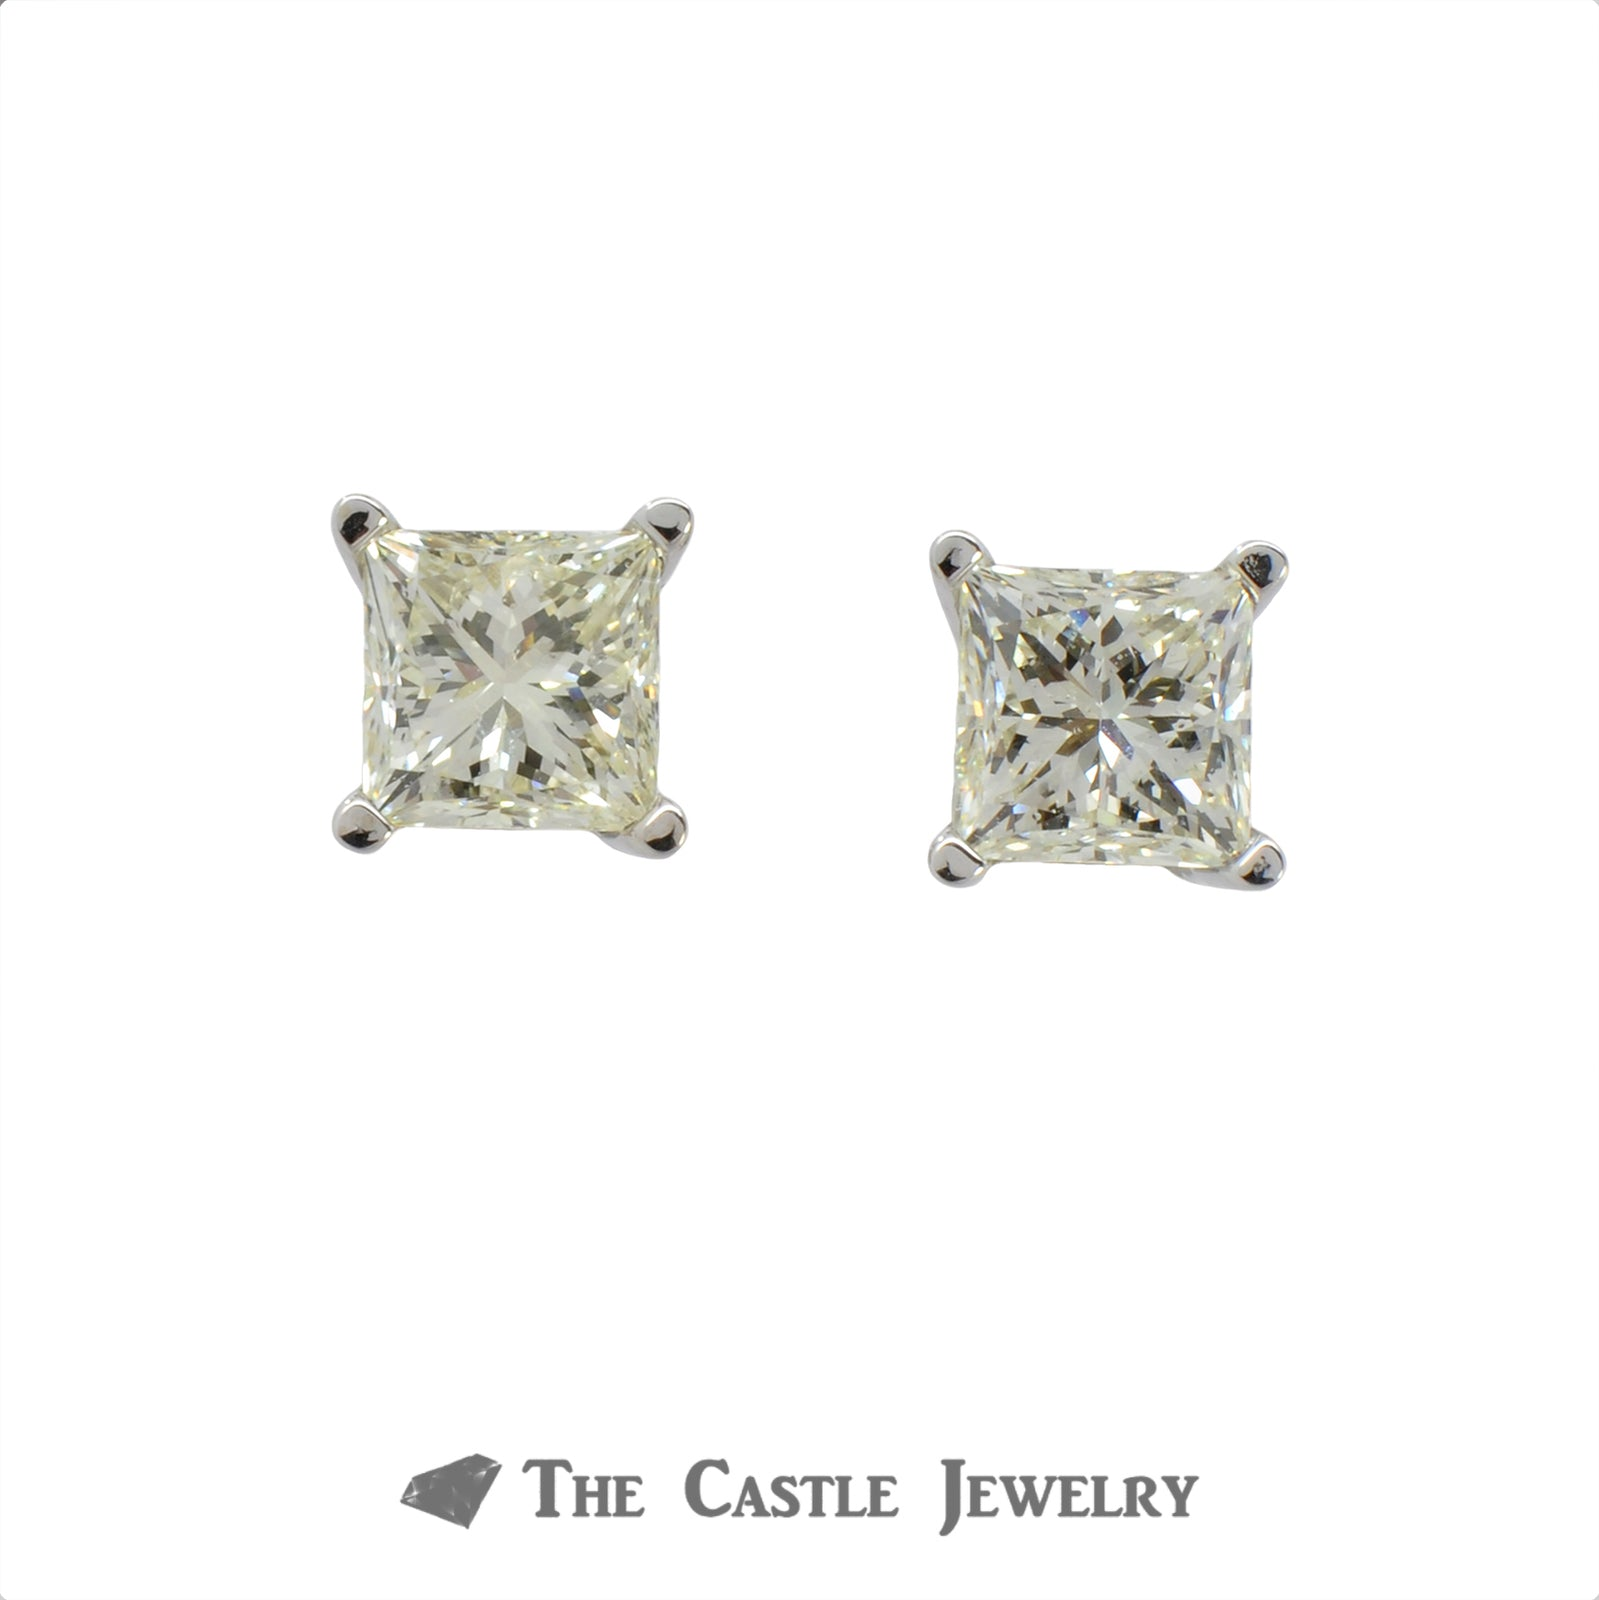 1.50cttw Princess Cut Diamond Stud Earrings in 14k White Gold